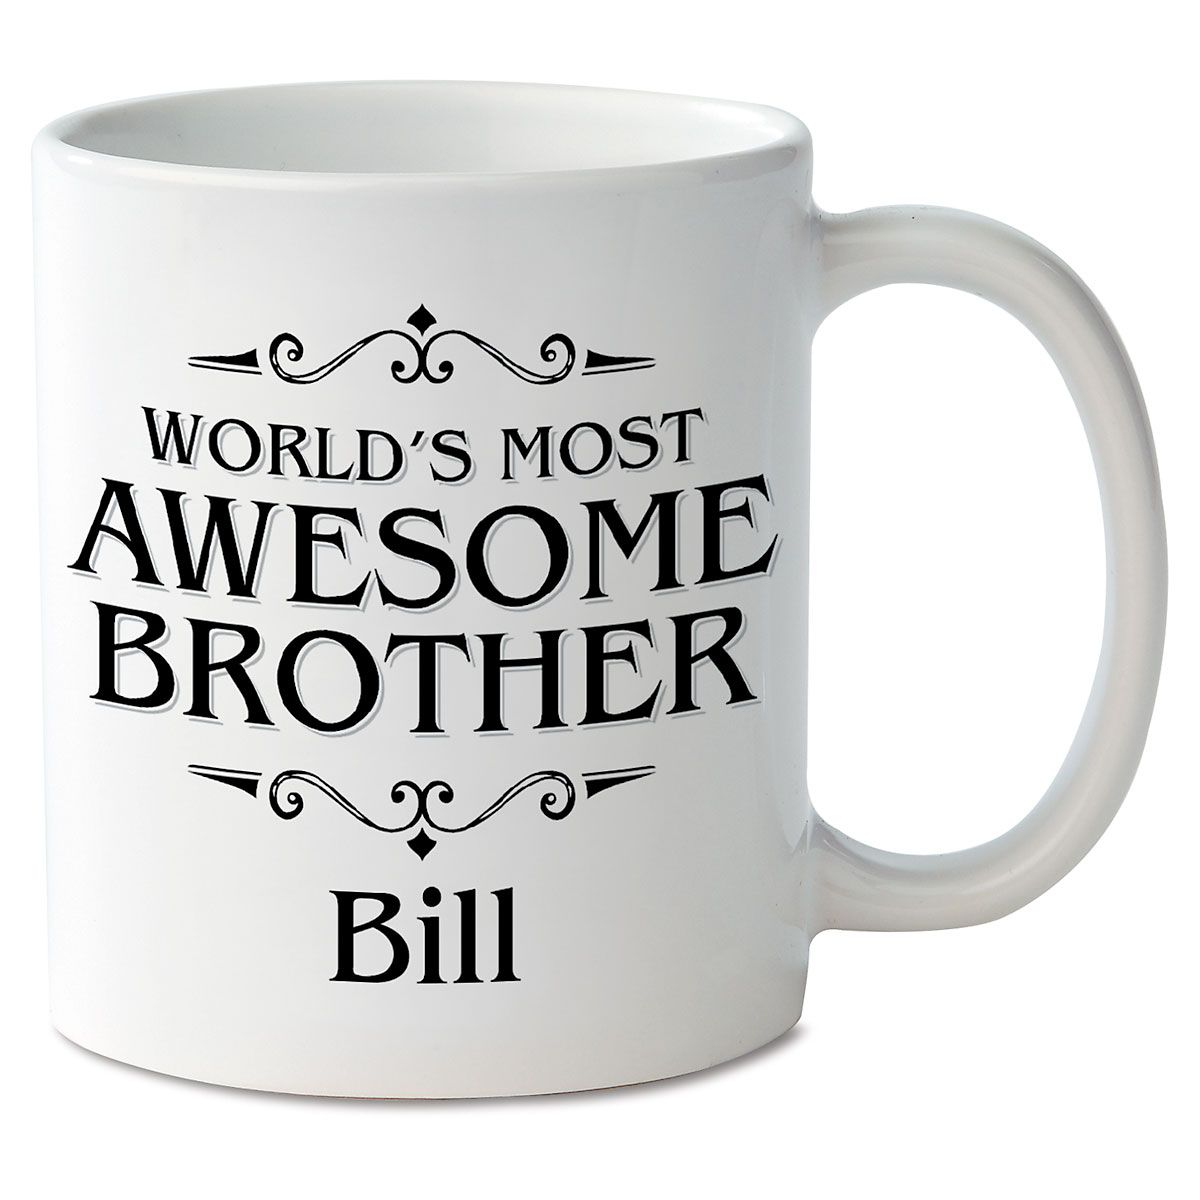 World's Most Awesome Brother Mug